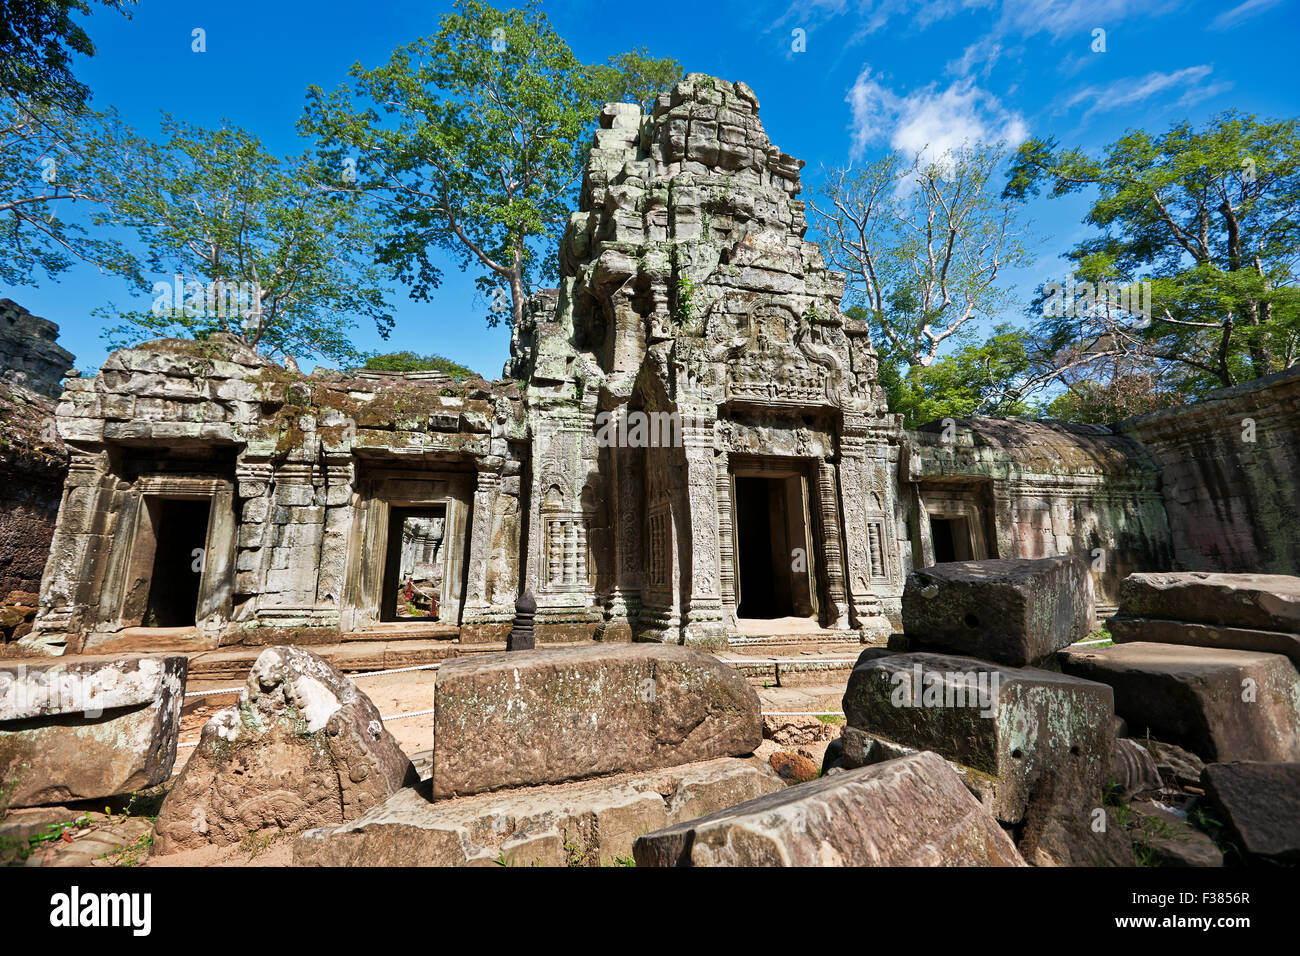 Ruins of Ta Prohm temple. Angkor Archaeological Park, Siem Reap Province, Cambodia. - Stock Image